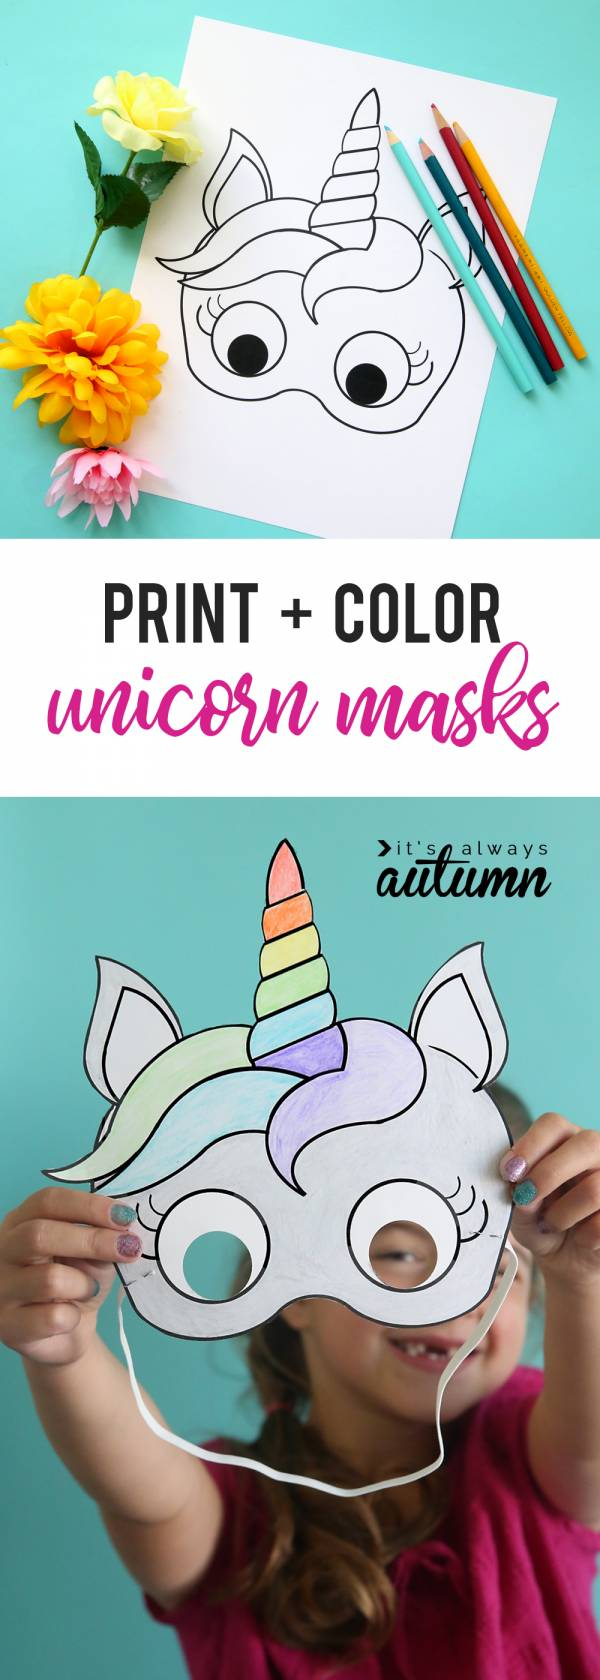 DIY | Unicorn Masks to Print and Color?